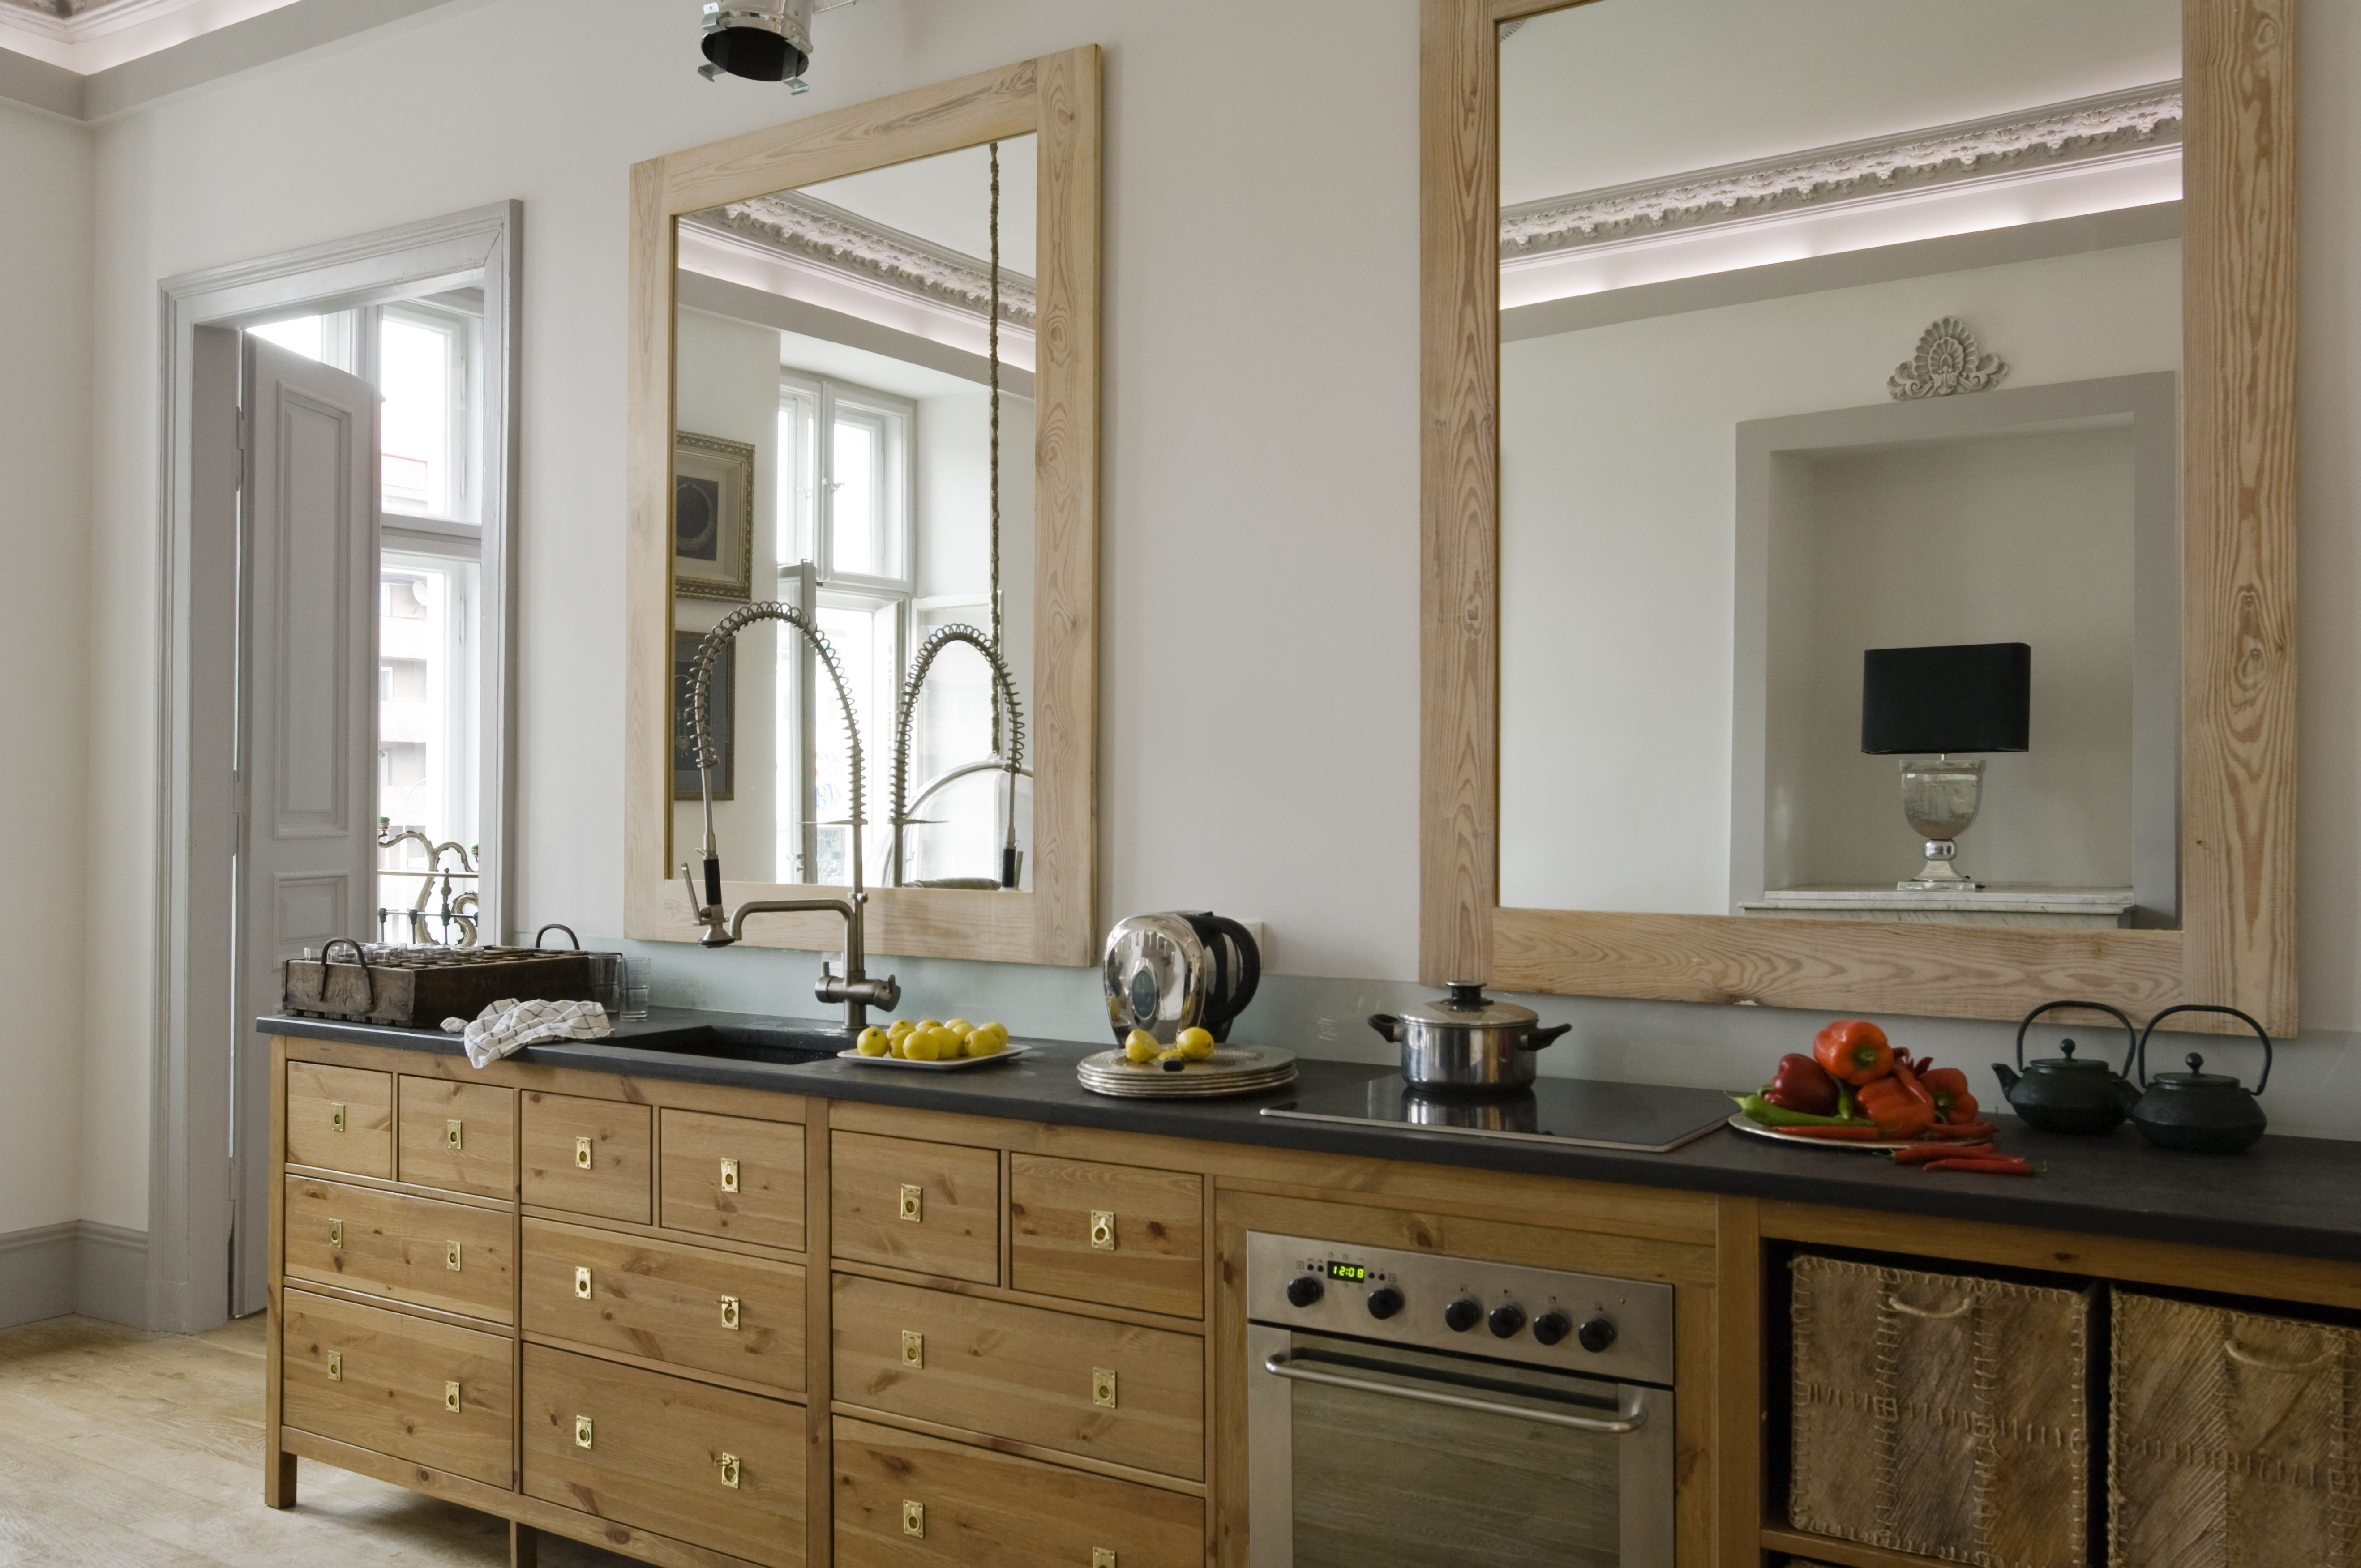 Feng Shui Of A Mirror Behind The Kitchen Stove Kitchen Decor Mirror Backsplash Kitchen Kitchen Stove